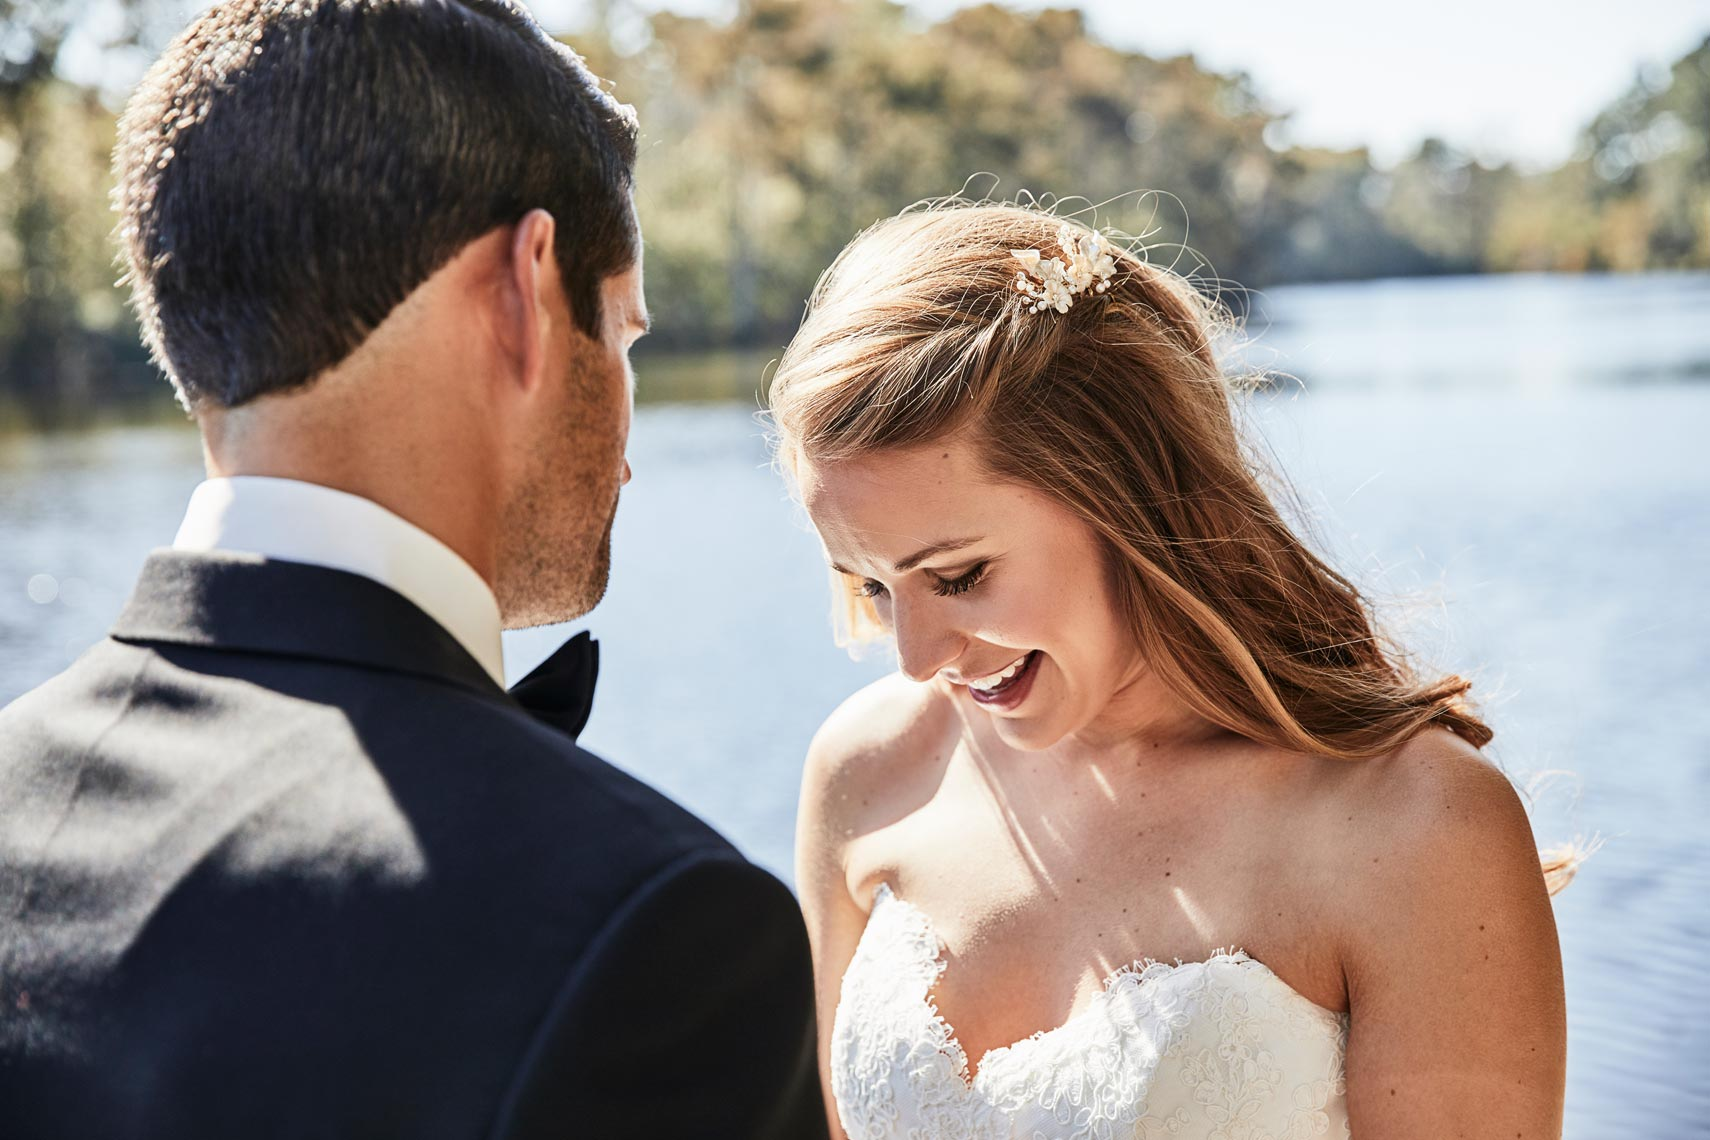 Mainecoastweddingphotography-1-23401